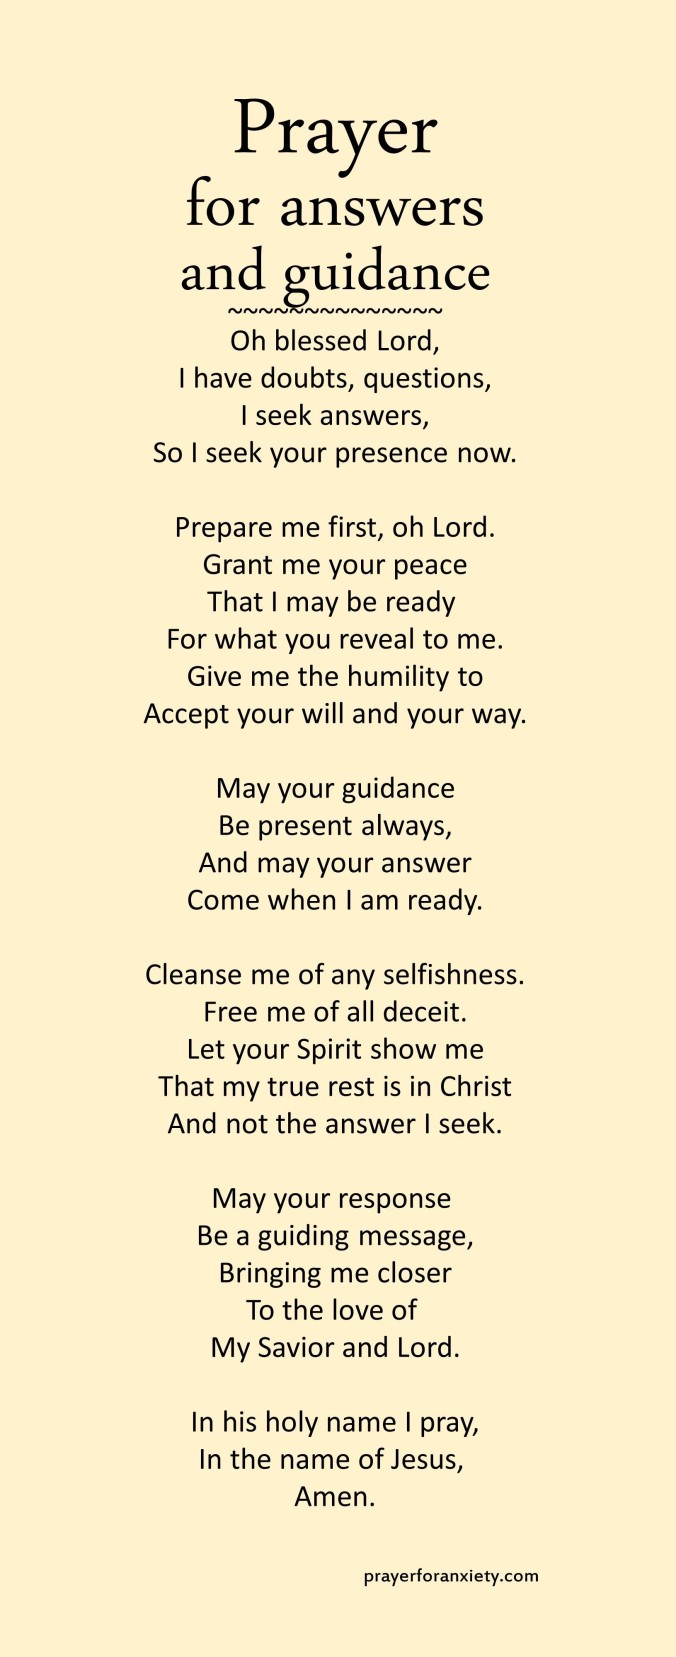 A prayer to help discover God's answers and get his guidance.